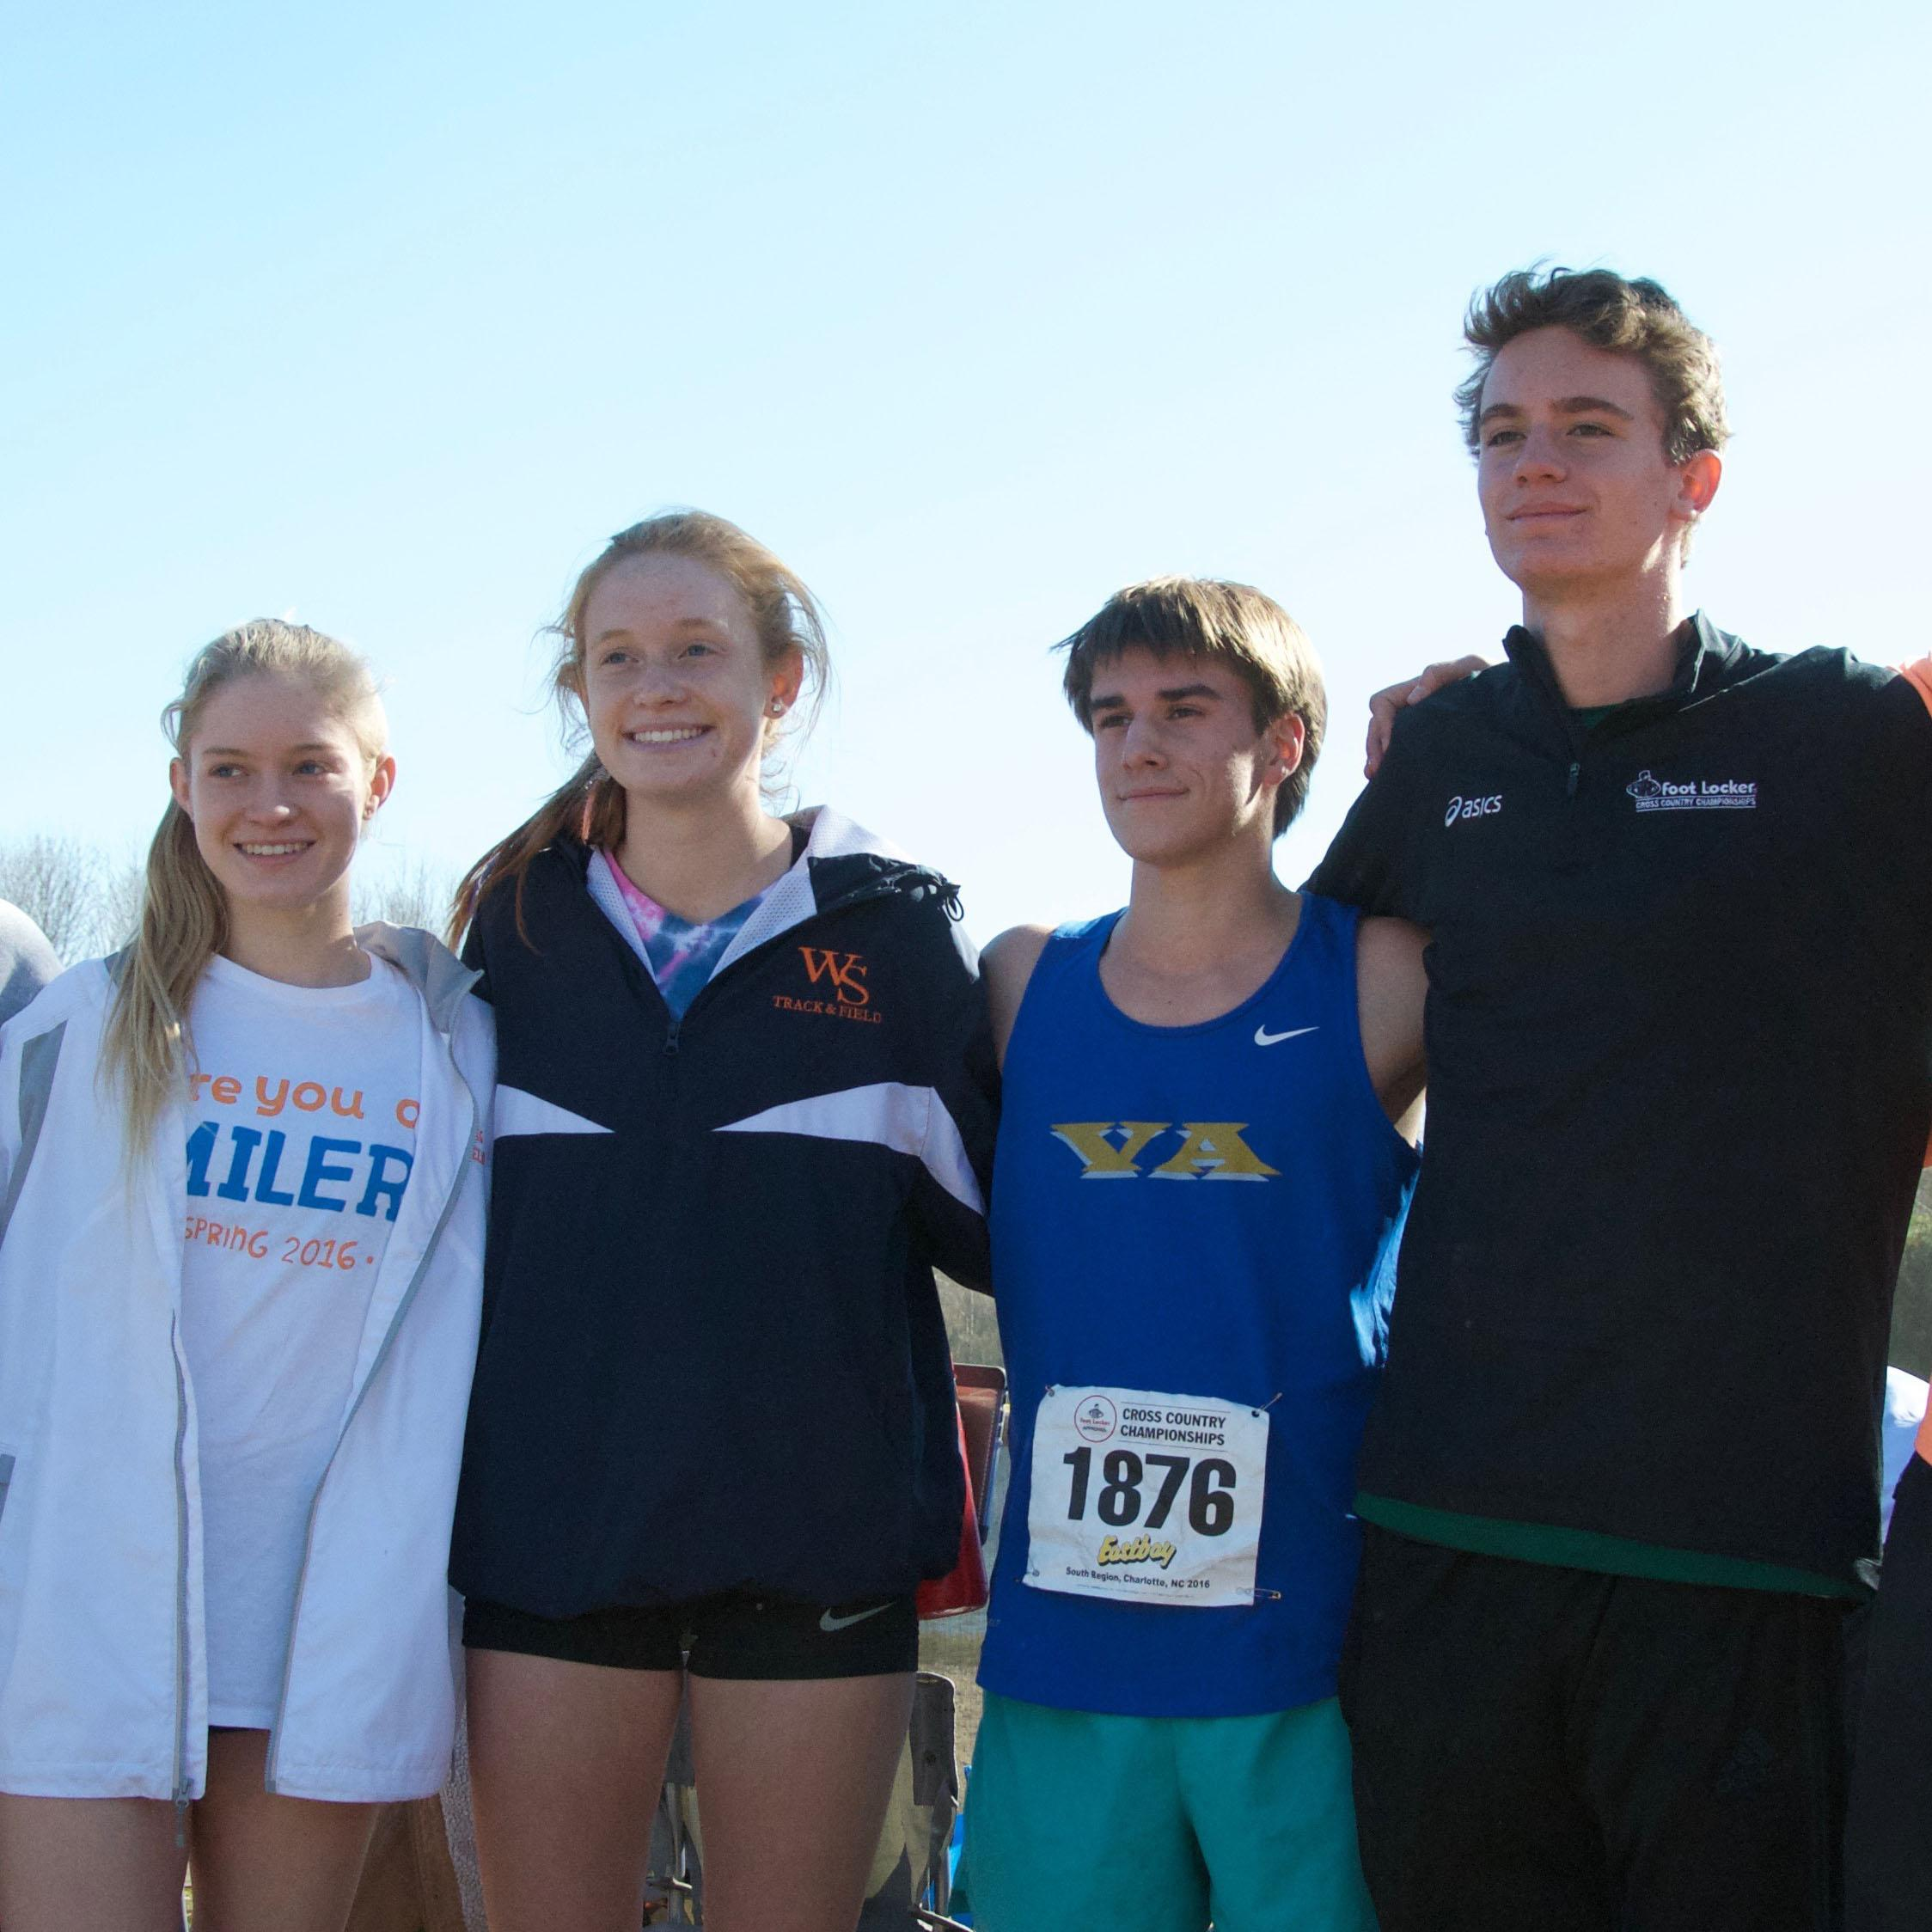 Cross Country Coach Chris Pelligrini poses proudly with Spartan runners who participated in the Footlocker meet.